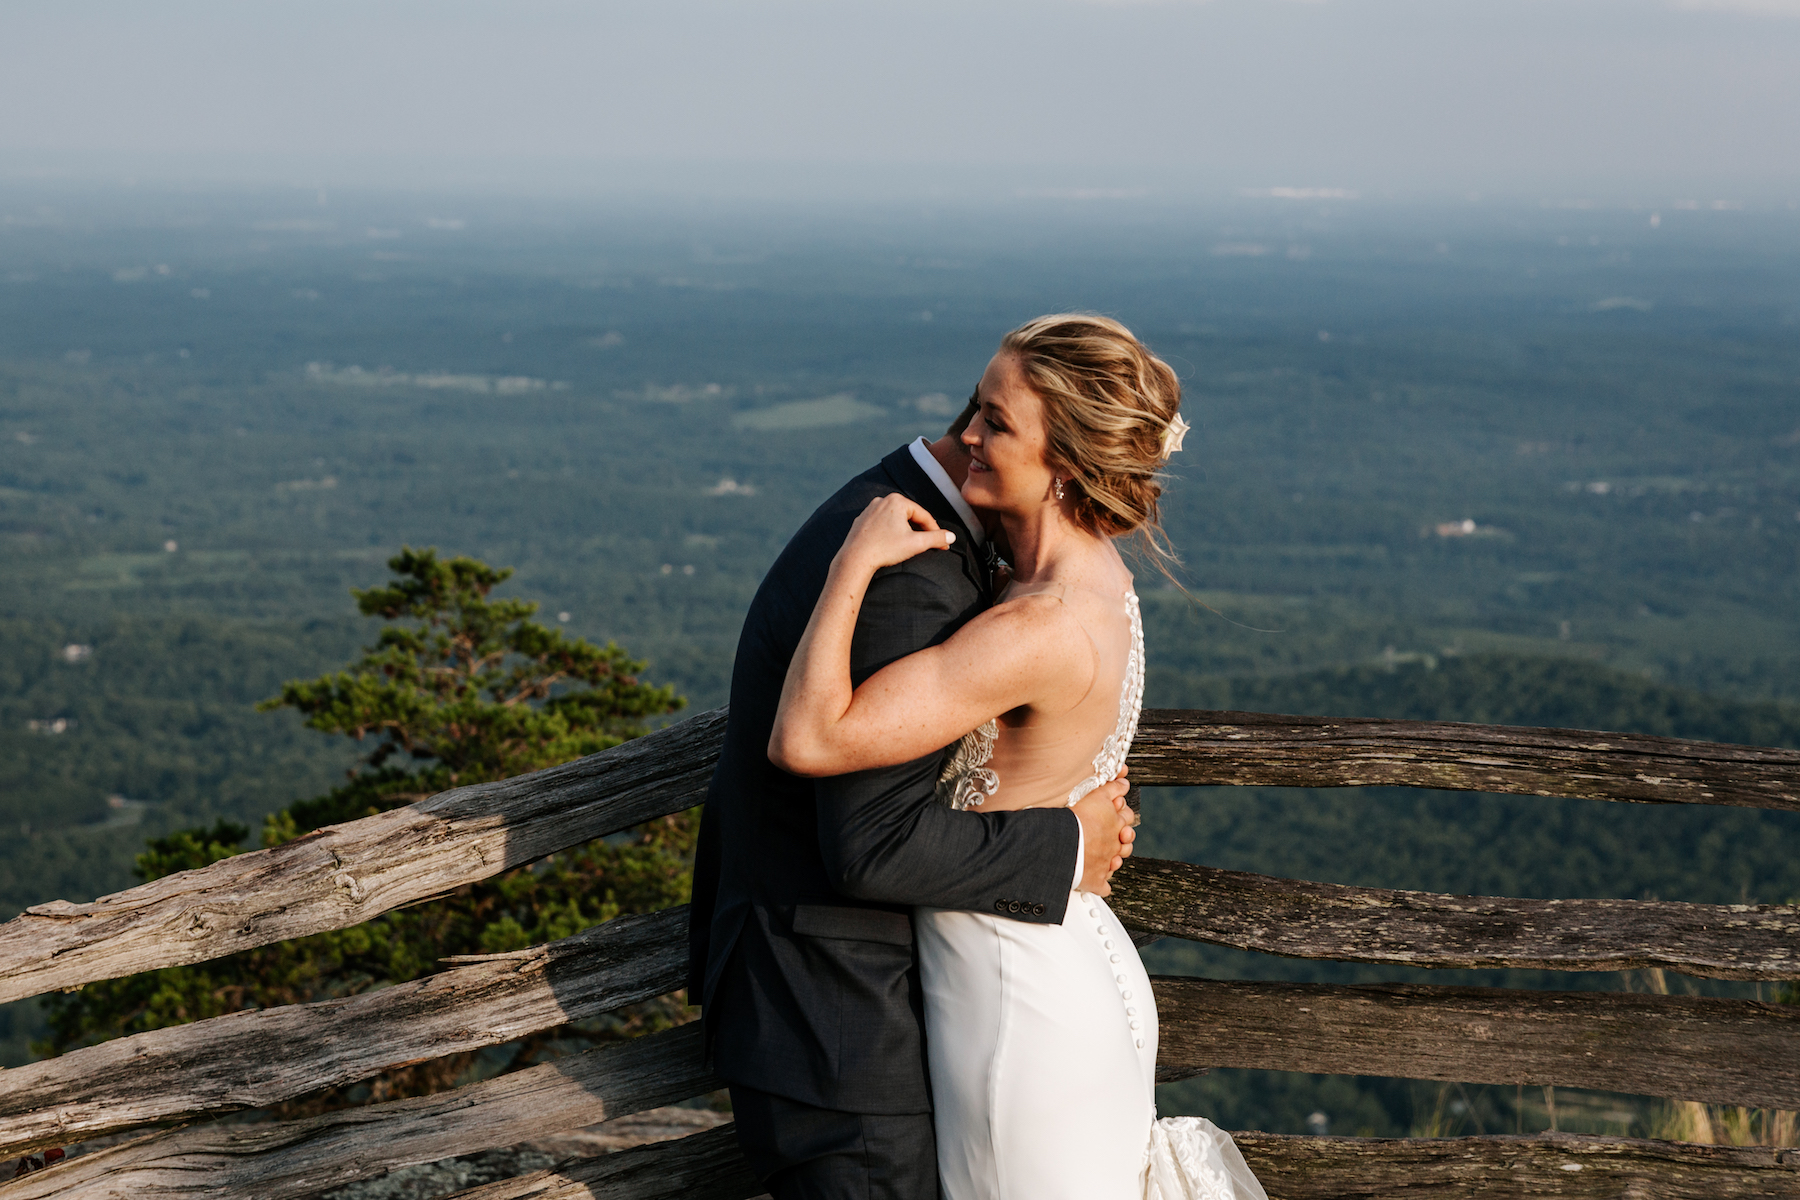 wedding-engagement-photographer-spartanburg-greenville-columbia-carolina-south-north-530.JPG